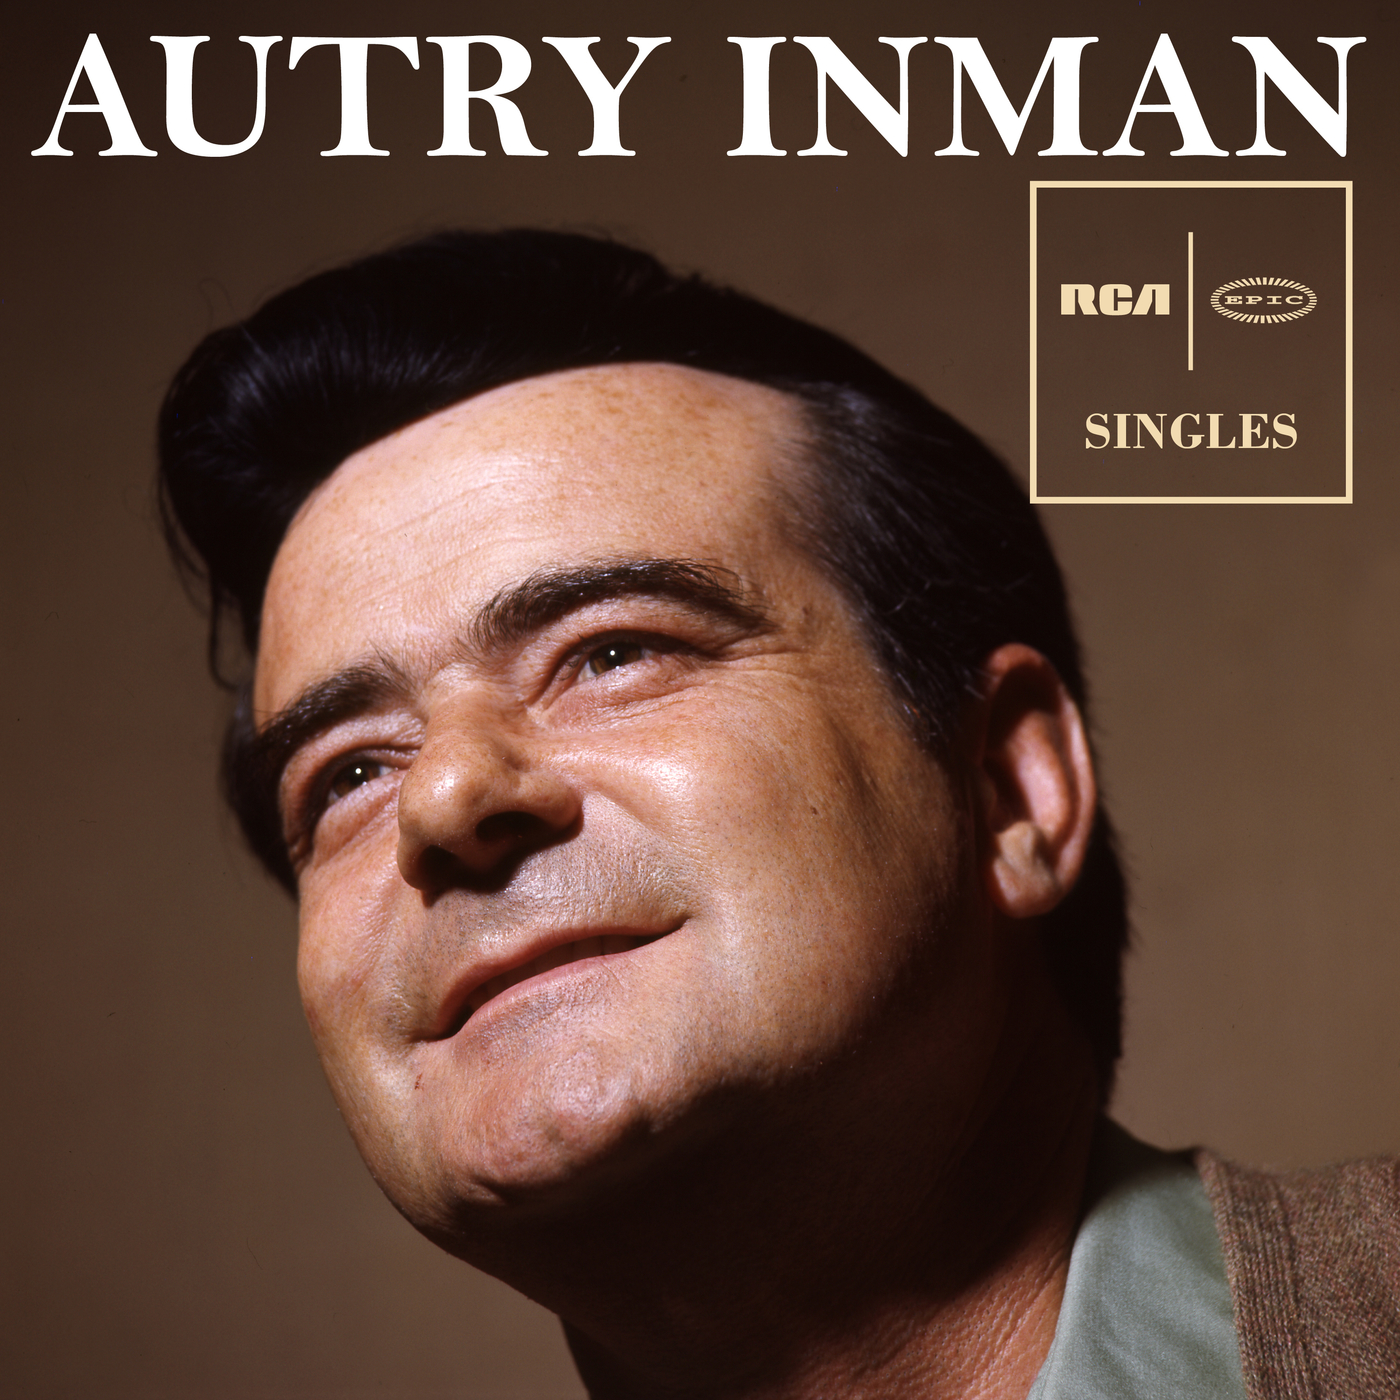 RCA & Epic Singles - Autry Inman